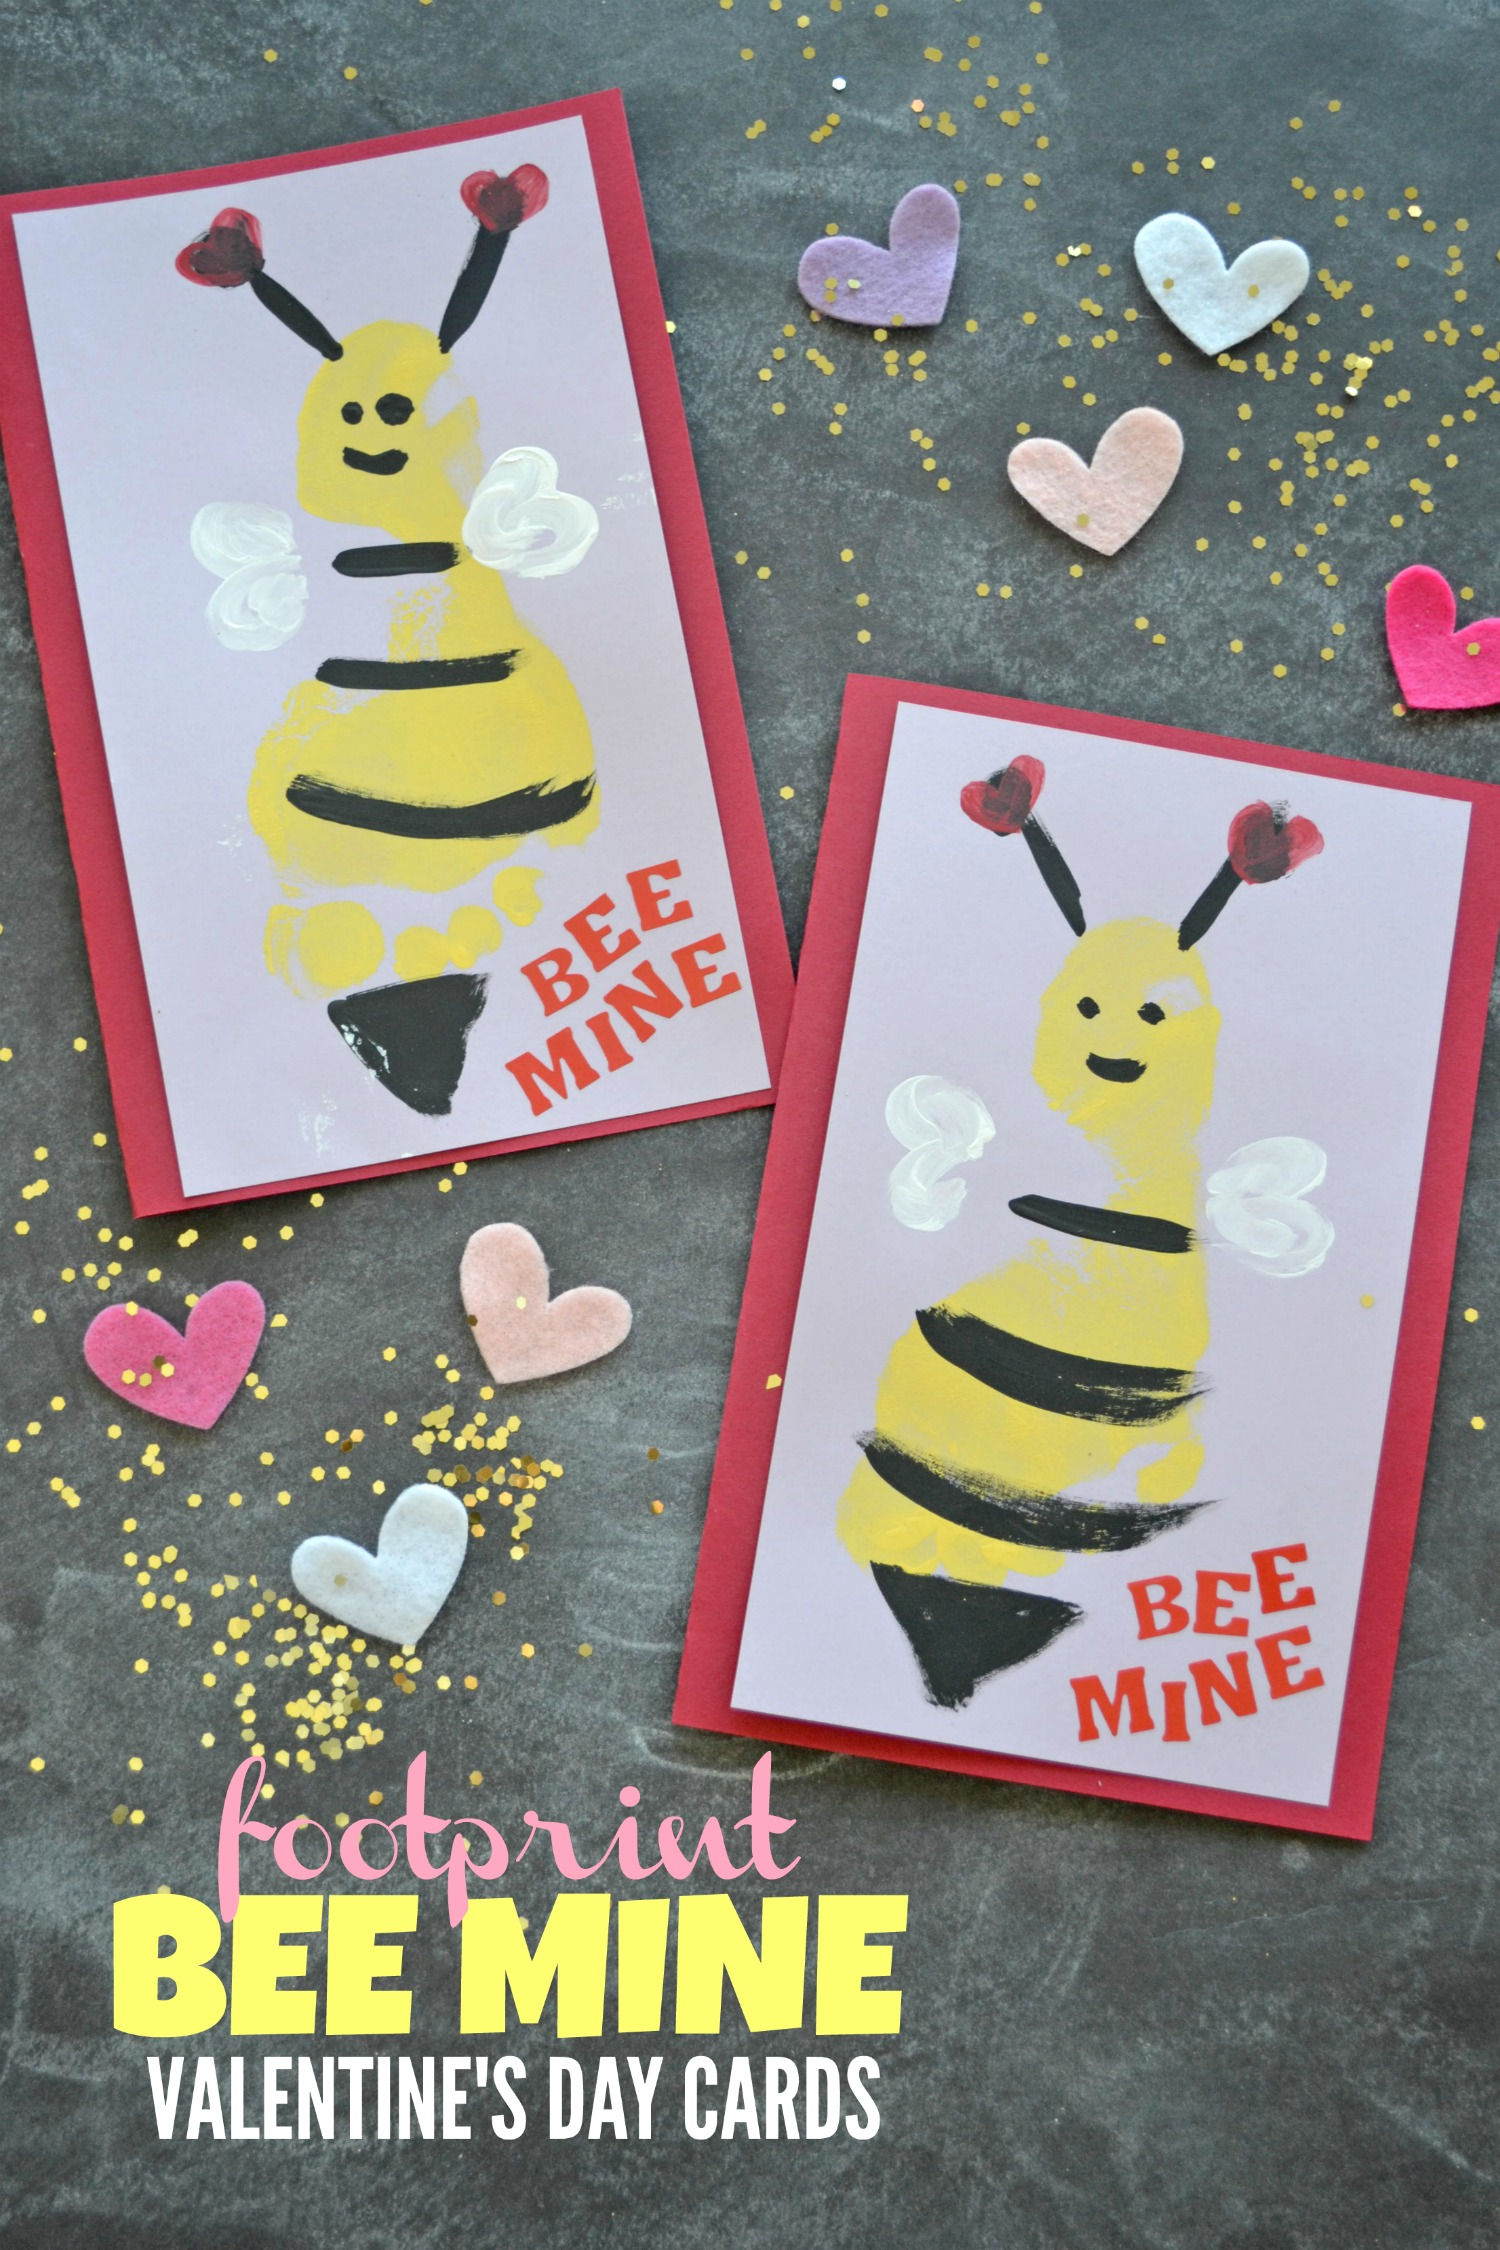 footprint bee mine valentine's day cards  make and takes